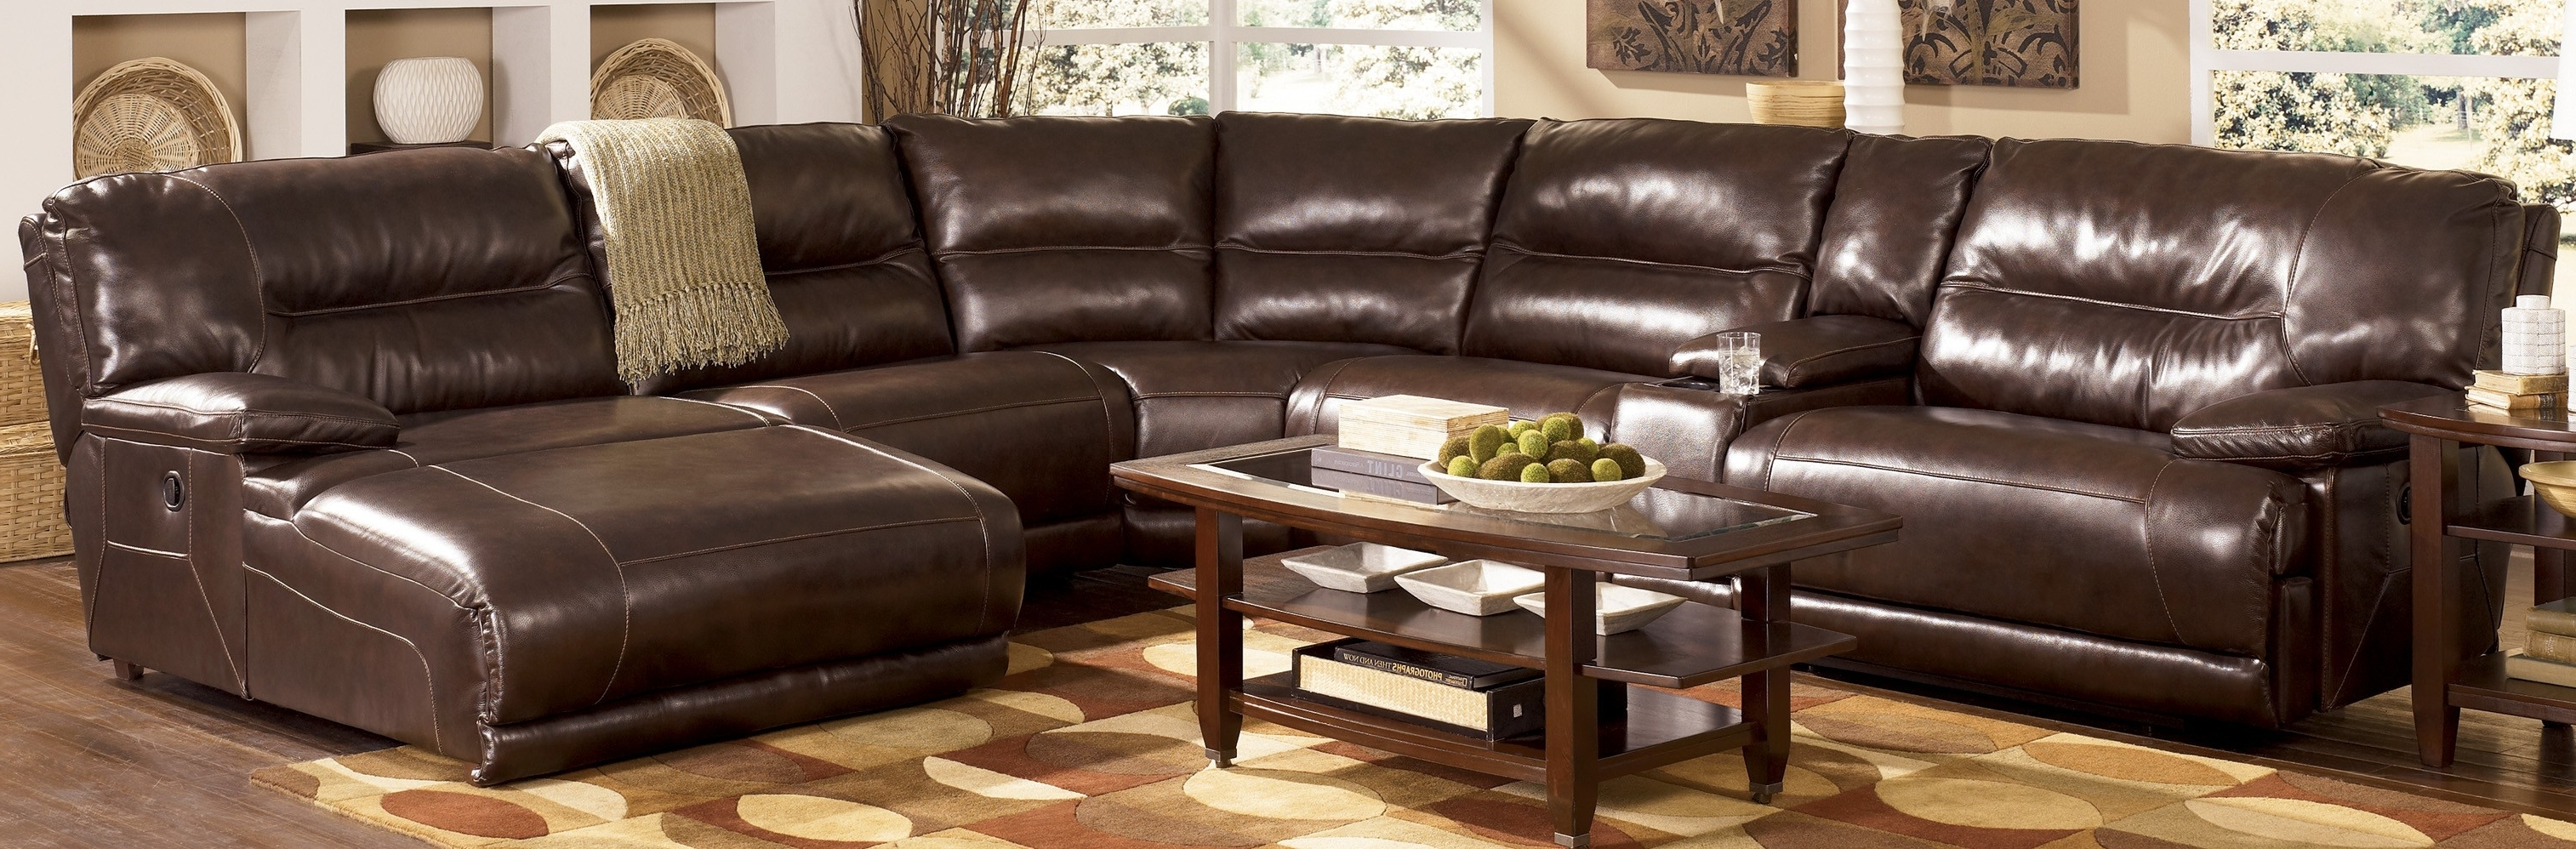 Latest Leather Sectional Sleeper Sofa Sectional Sofas With Recliners And With Coffee Tables For Sectional Sofa With Chaise (View 8 of 15)